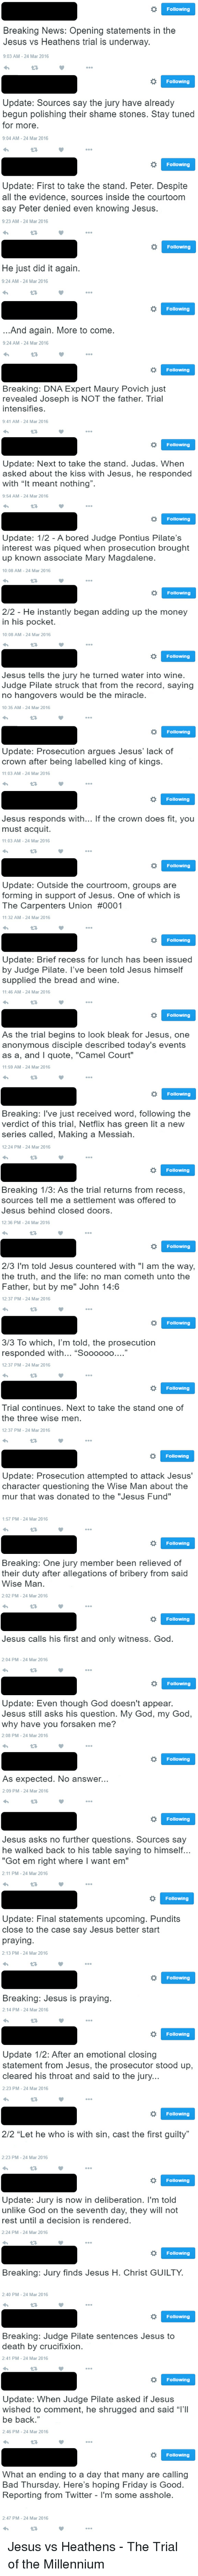 """No Hangover: Following  Breaking News: Opening statements in the  Jesus vs Heathens trial is underway.  9:03 AM 24 Mar 2016  Following  Update: Sources say the jury have already  begun polishing their shame Stones. Stay tuned  for more.  9:04 AM 24 Mar 2016  Following  Update: First to take the stand. Peter. Despite  all the evidence, sources inside the courtoom  say Peter denied even knowing Jesus.  9:23 AM 24 Mar 2016  o Following  He just did it again.  9:24 AM 24 Mar 2016  Following  And again. More to come.  9:24 AM 24 Mar 2016   Following  Breaking: DNA Expert Maury Povich just  revealed Joseph is NOT the father. Trial  intensifies.  9:41 AM 24 Mar 2016  Following  Update: Next to take the stand. Judas. When  asked about the kiss with Jesus, he responded  with """"It meant nothing"""".  9:54 AM 24 Mar 2016  Following  Update: 1/2 A bored Judge Pontius Pilate's  interest was piqued when prosecution brought  up known associate Mary Magdalene.  10:08 AM 24 Mar 2016  Following  2/2 He instantly began adding up the money  in his pocket.  10:08 AM 24 Mar 2016  Following  Jesus tells the jury he turned water into wine.  Judge Pilate struck that from the record, saying  no hangovers would be the miracle.  10:35 AM 24 Mar 2016   Following  Update: Prosecution argues Jesus' lack of  crown after being labelled king of kings.  11:03 AM 24 Mar 2016  Following  Jesus responds with  If the crown does fit, you  must acquit.  11:03 AM 24 Mar 2016  Following  Update: Outside the courtroom, groups are  forming in support of Jesus. One of which is  The Carpenters Union #0001  11:32 AM 24 Mar 2016  Following  Update: Brief recess for lunch has been issued  by Judge Pilate. I've been told Jesus himself  supplied the bread and wine.  11:46 AM 24 Mar 2016  Following  As the trial begins to look bleak for Jesus, one  anonymous disciple described today's events  as a, and I quote, """"Camel Court""""  11:59 AM-24 Mar 2016   Following  Breaking: l've just received word, following the  verdict of th"""